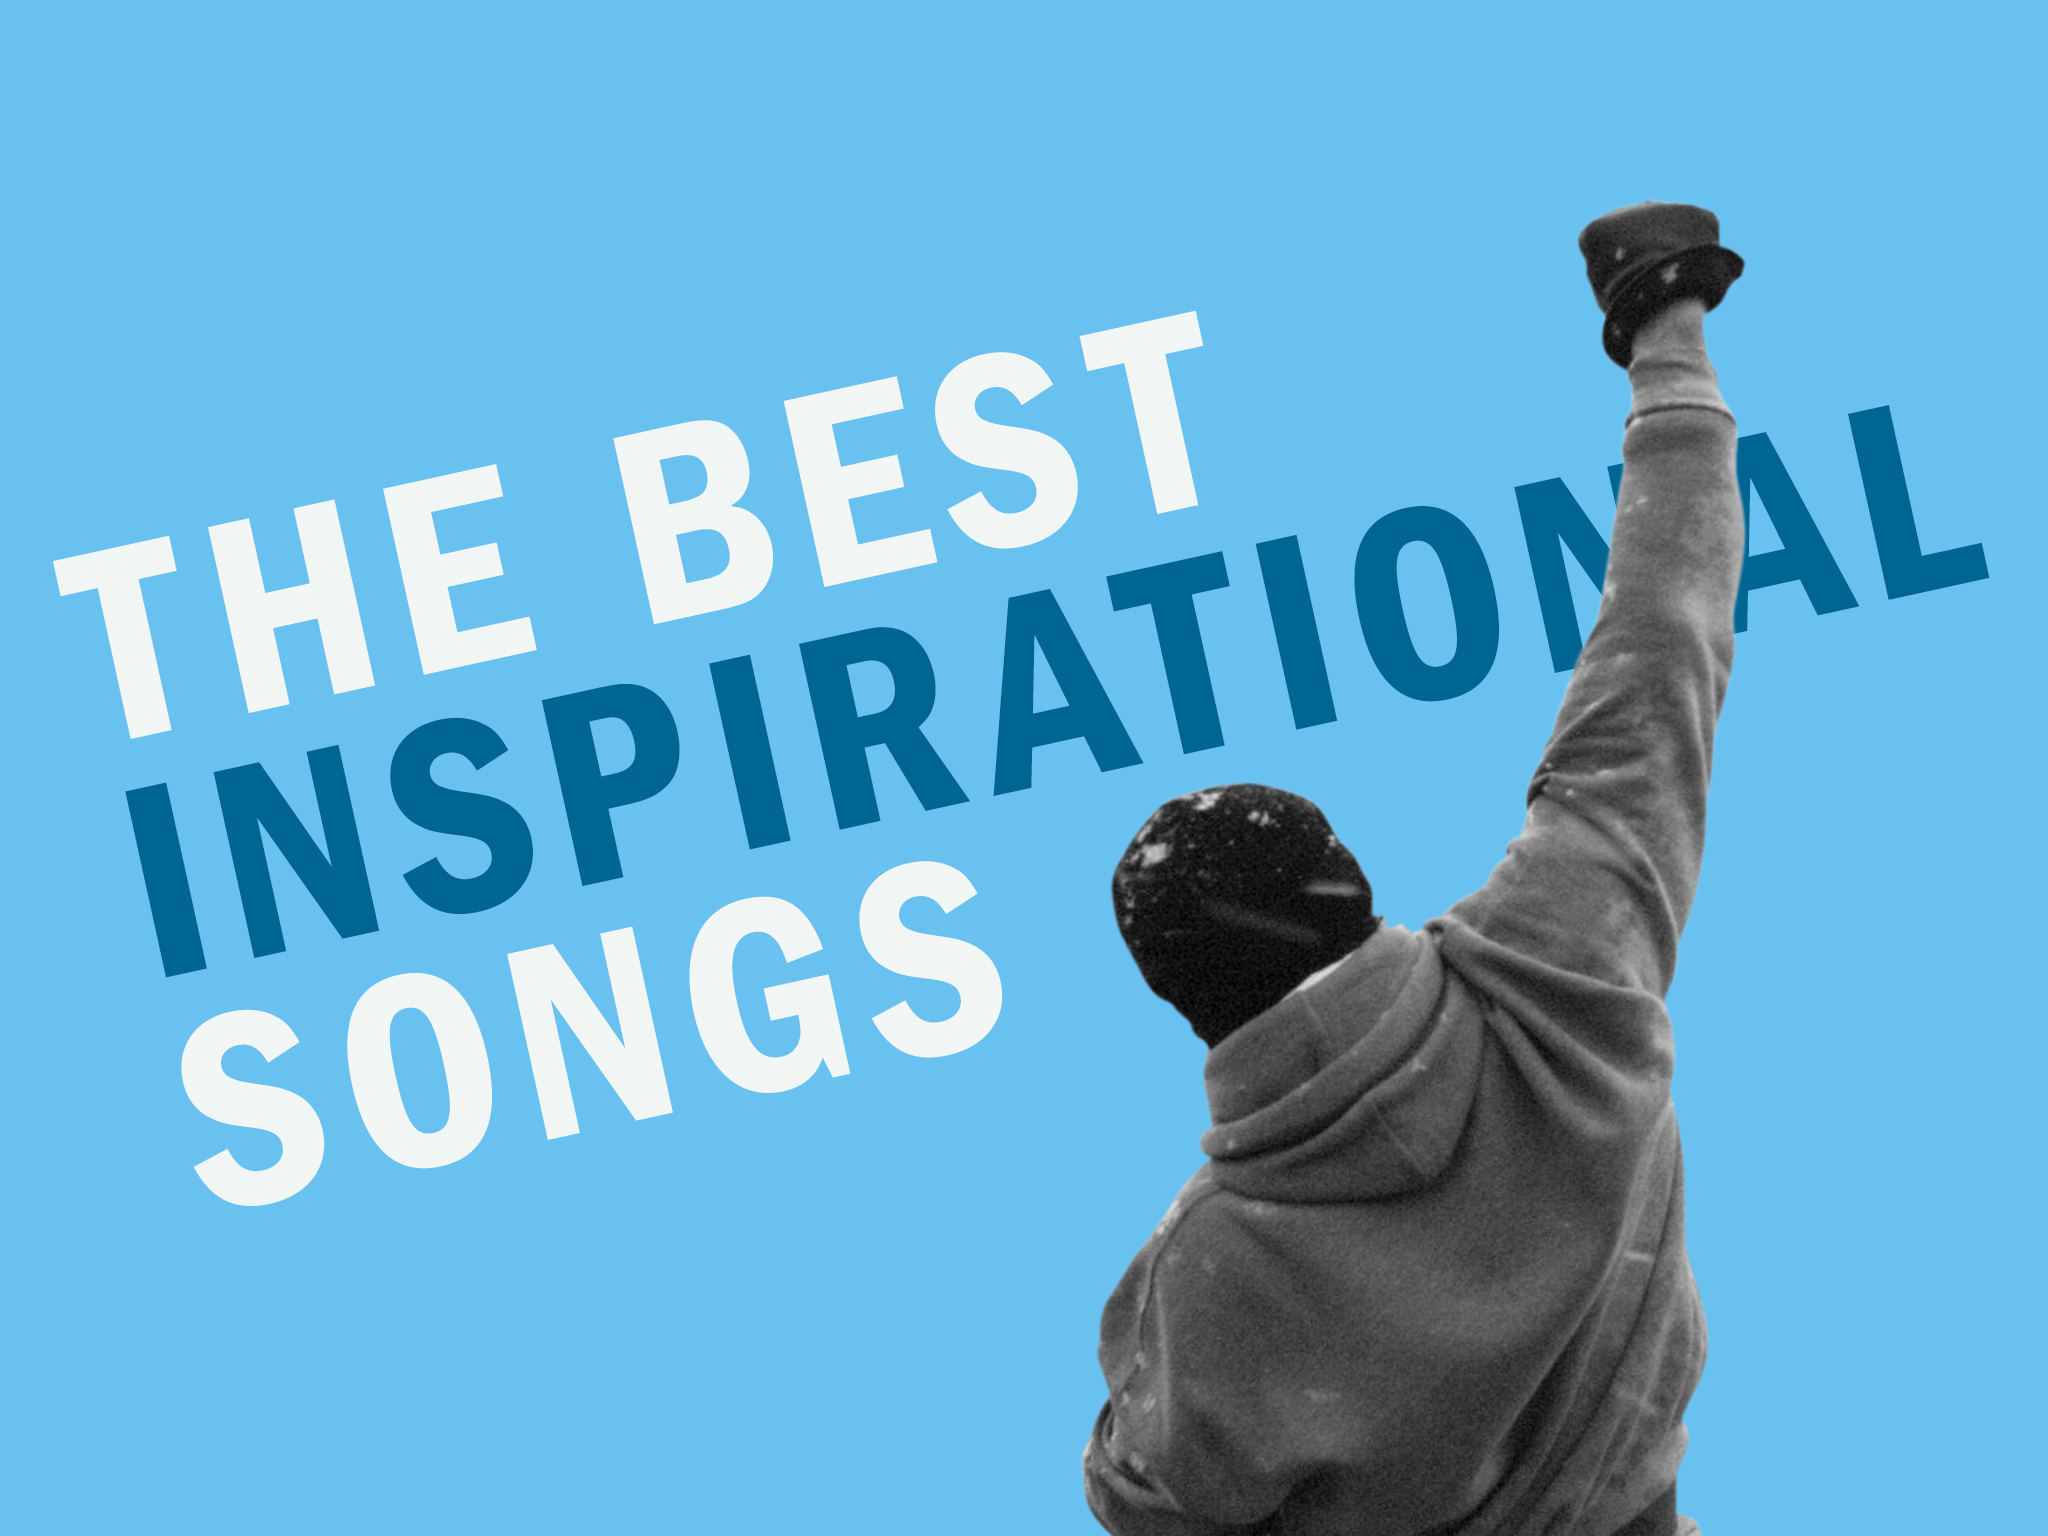 The 30 Best Inspirational Songs From Heroes To Born To